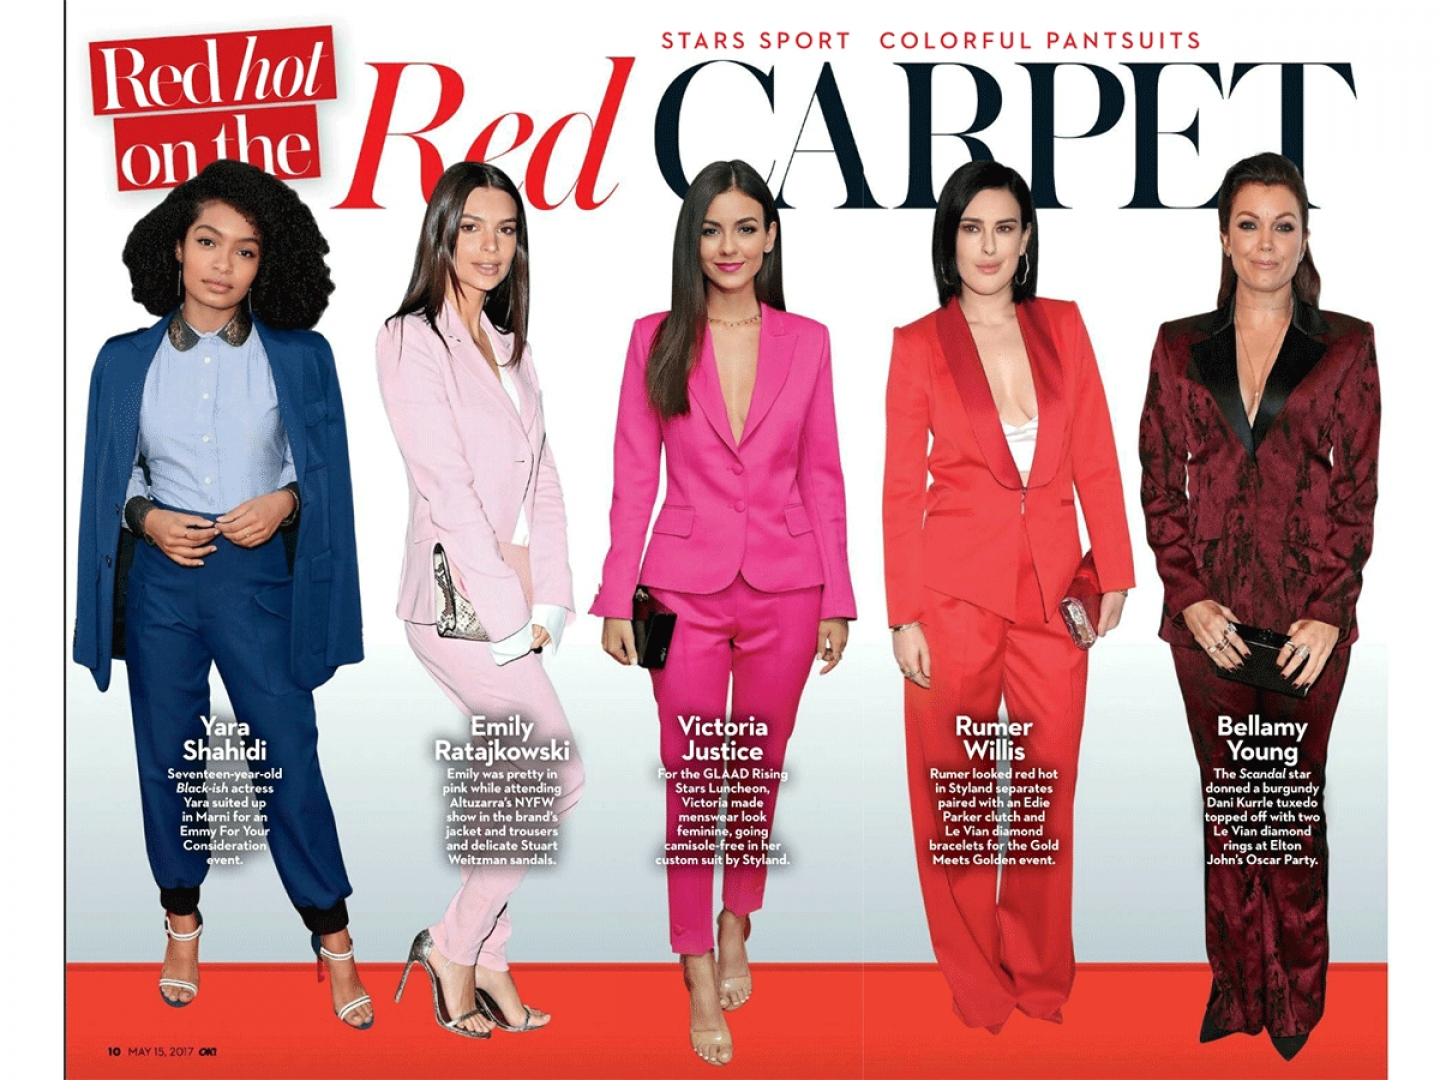 RED HOT ON THE RED CARPET